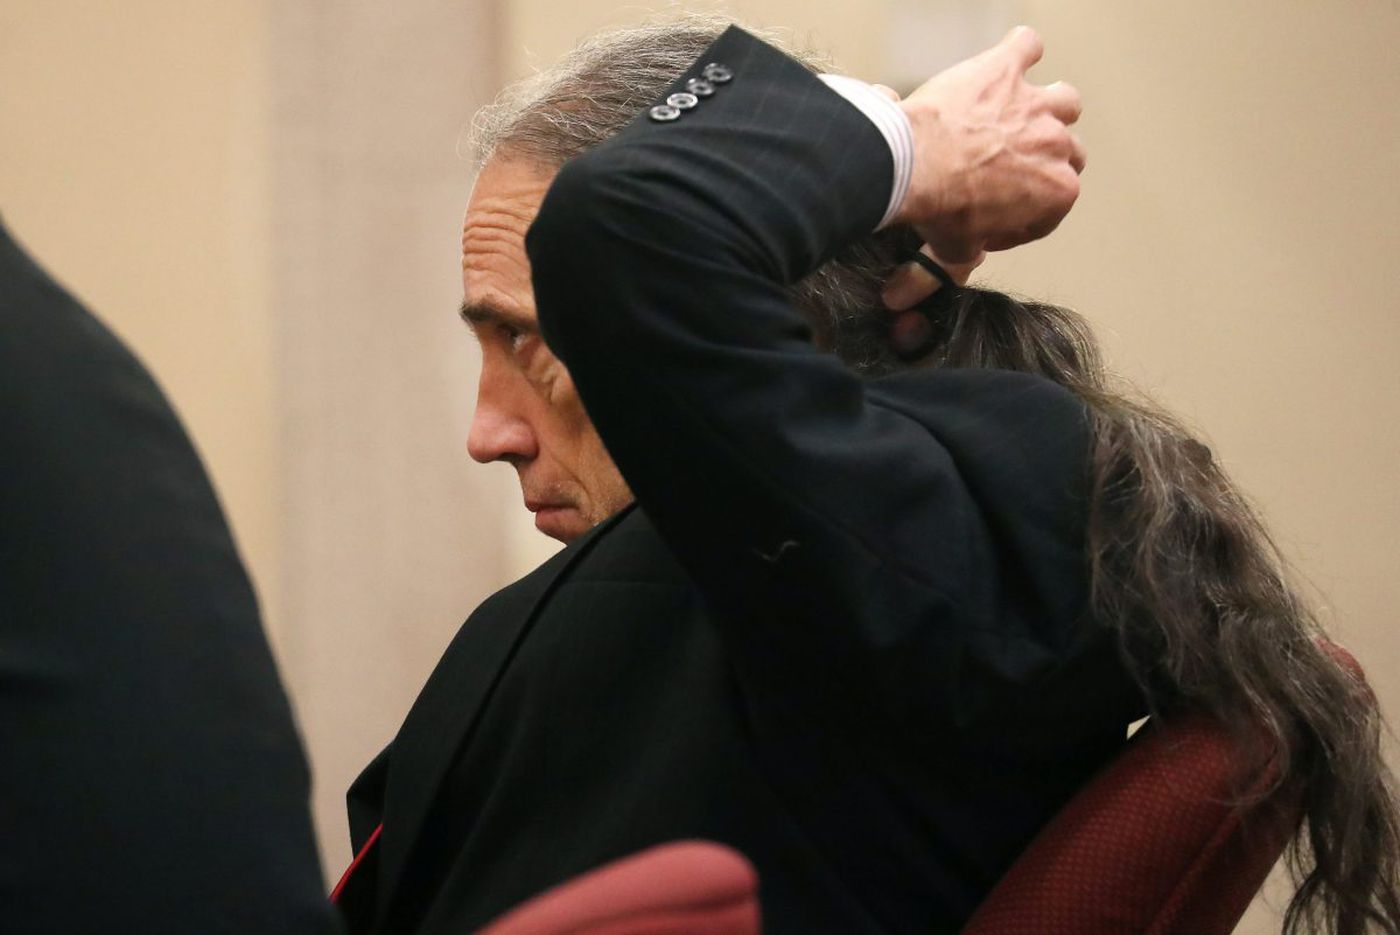 'I feared for my life': Former Pagans member testifies at April Kauffman murder trial